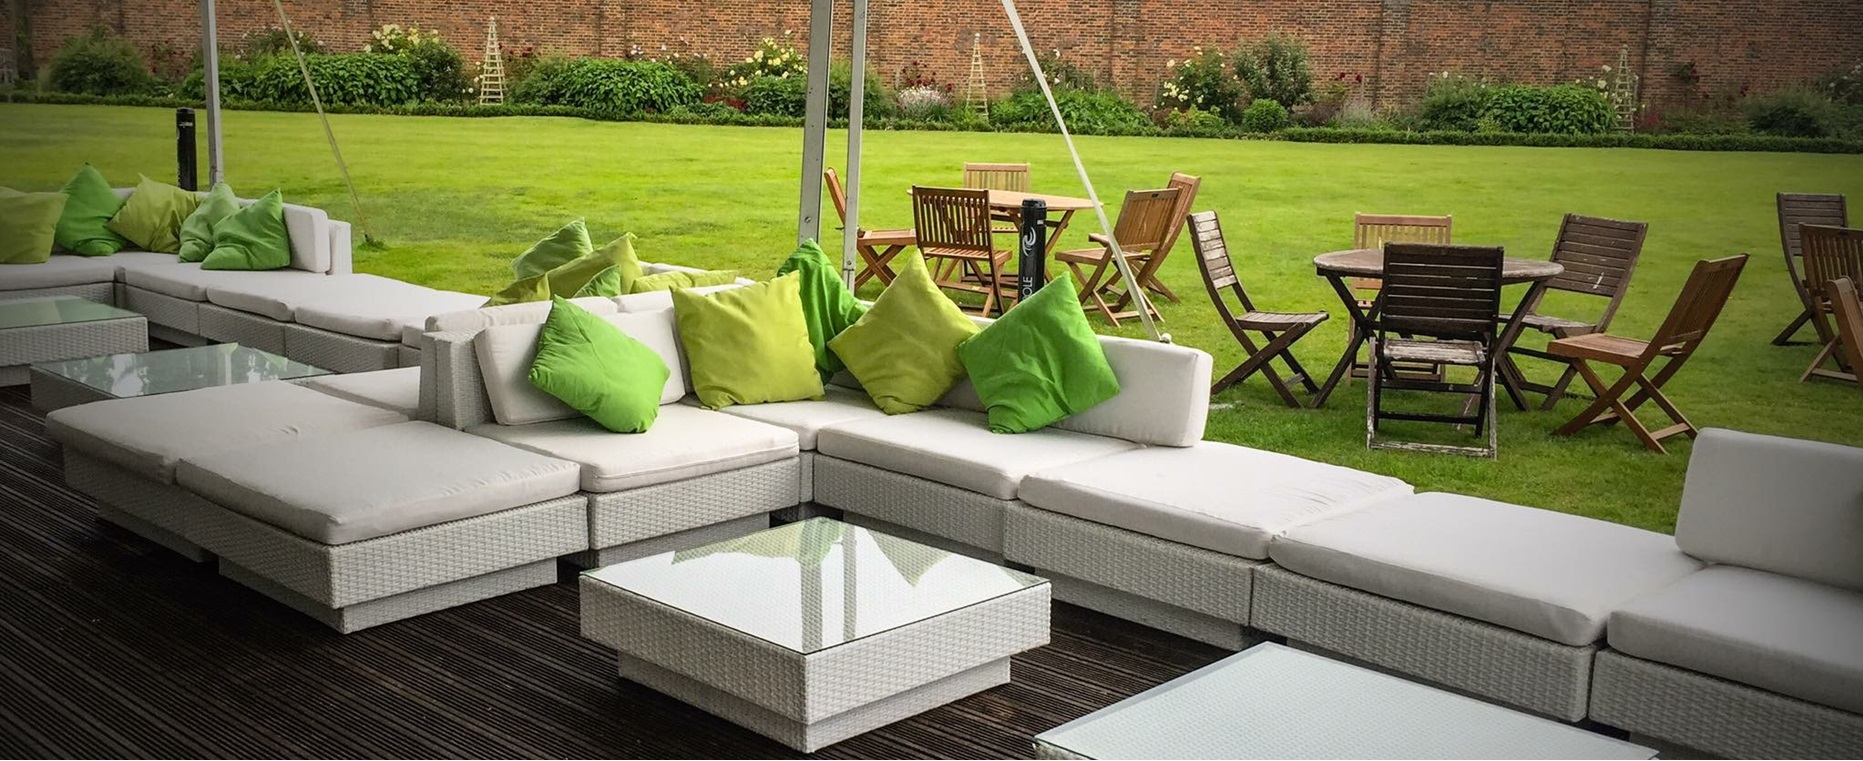 outdoor furniture hire: white sofa hire